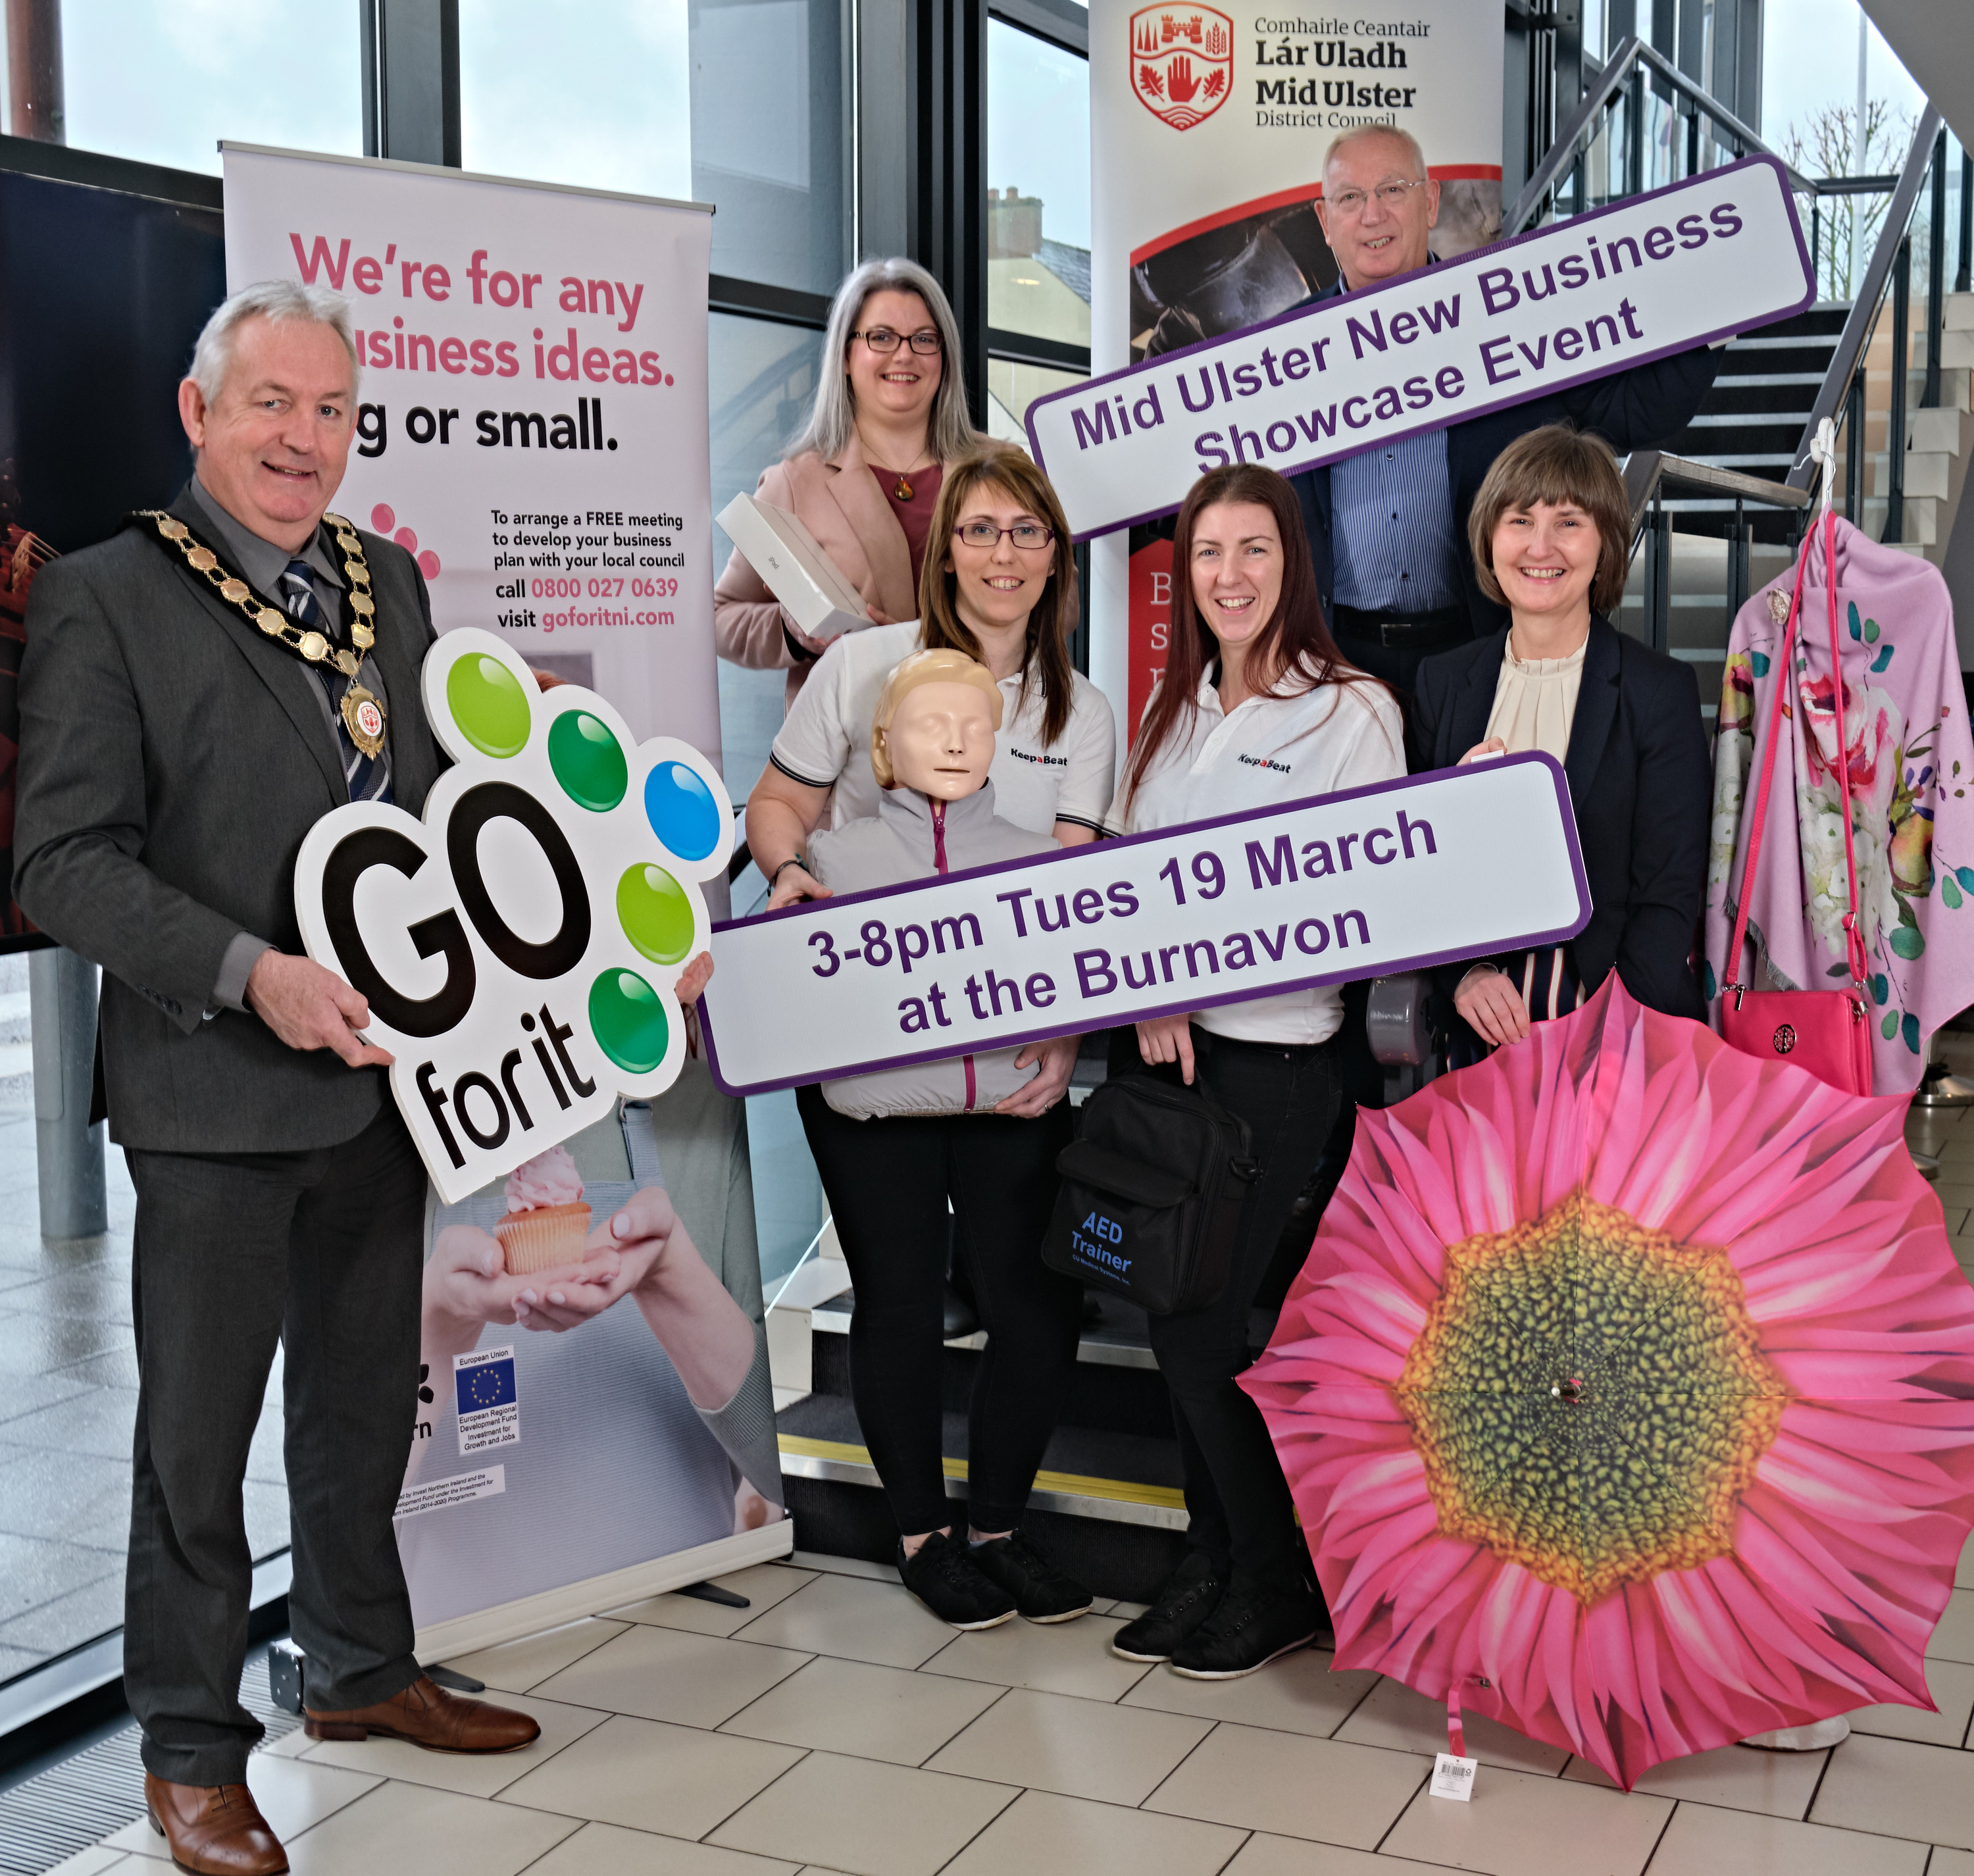 You're invited to the First New Business Showcase Event in Mid Ulster